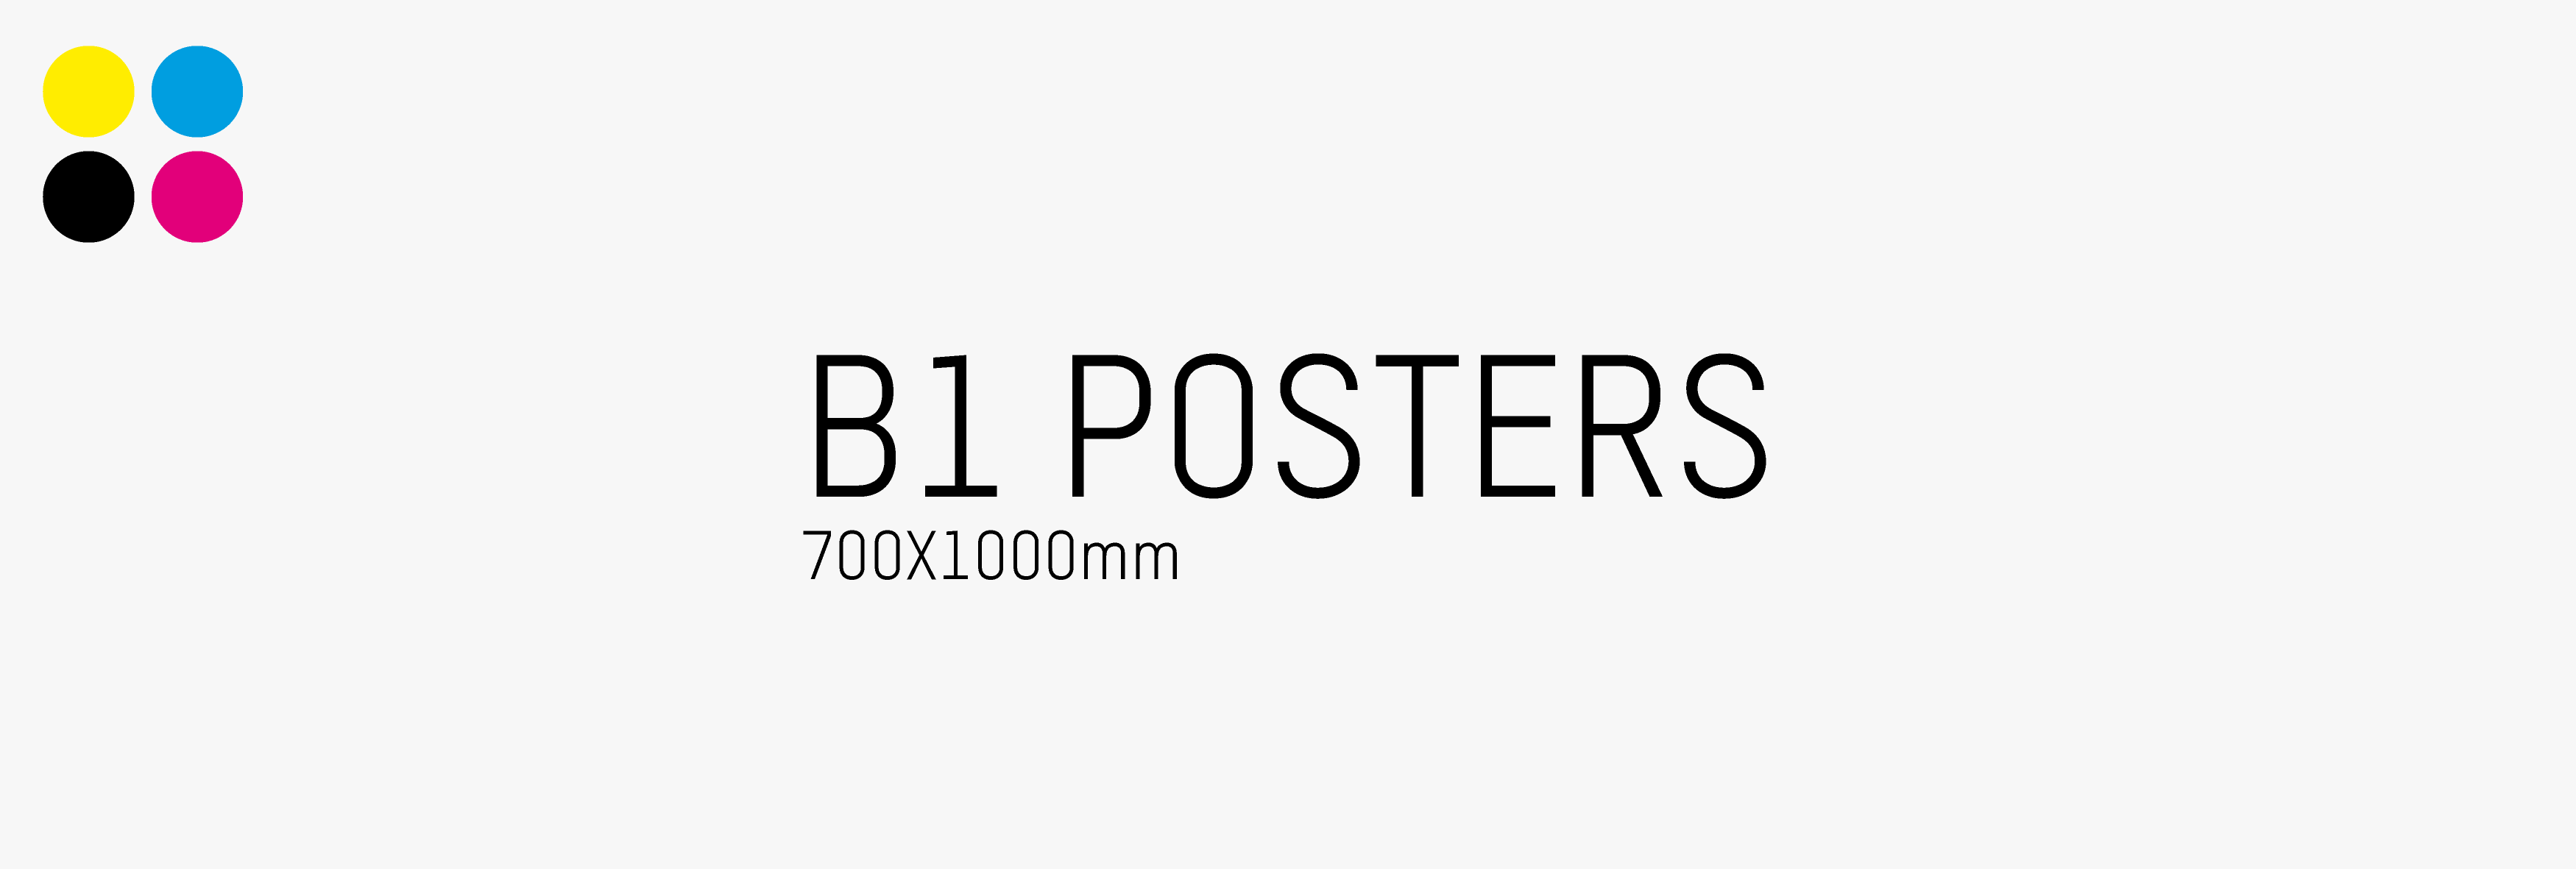 B1-posters